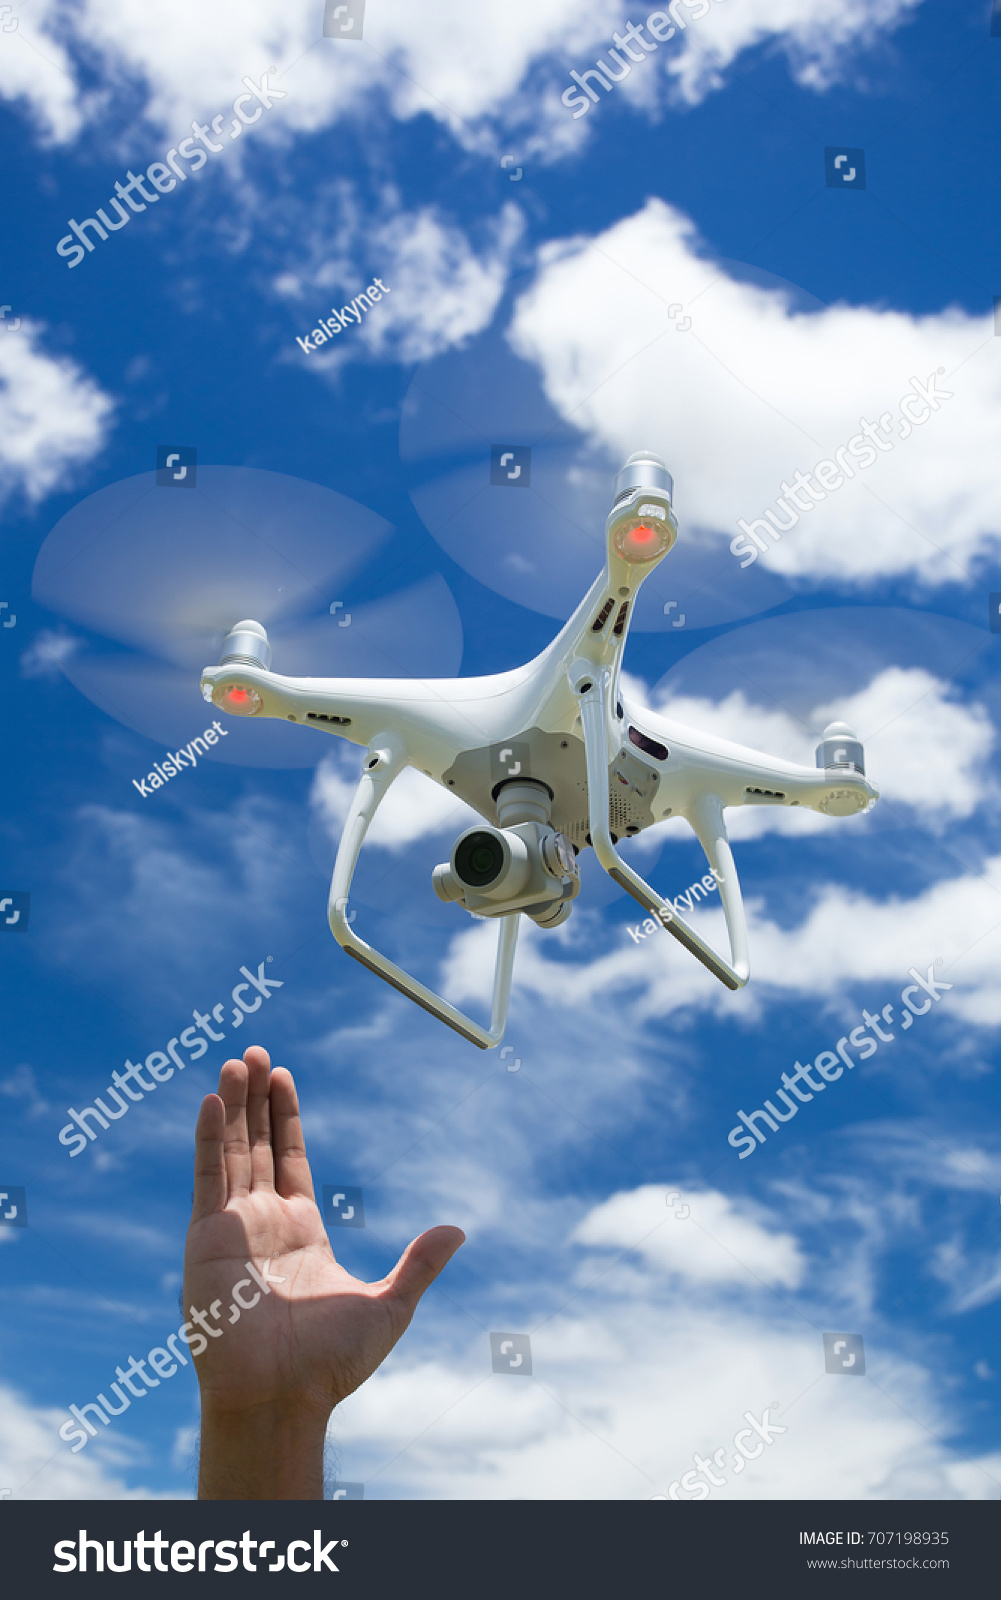 Drone Photographer Man Hands Drone Professional Stock Photo